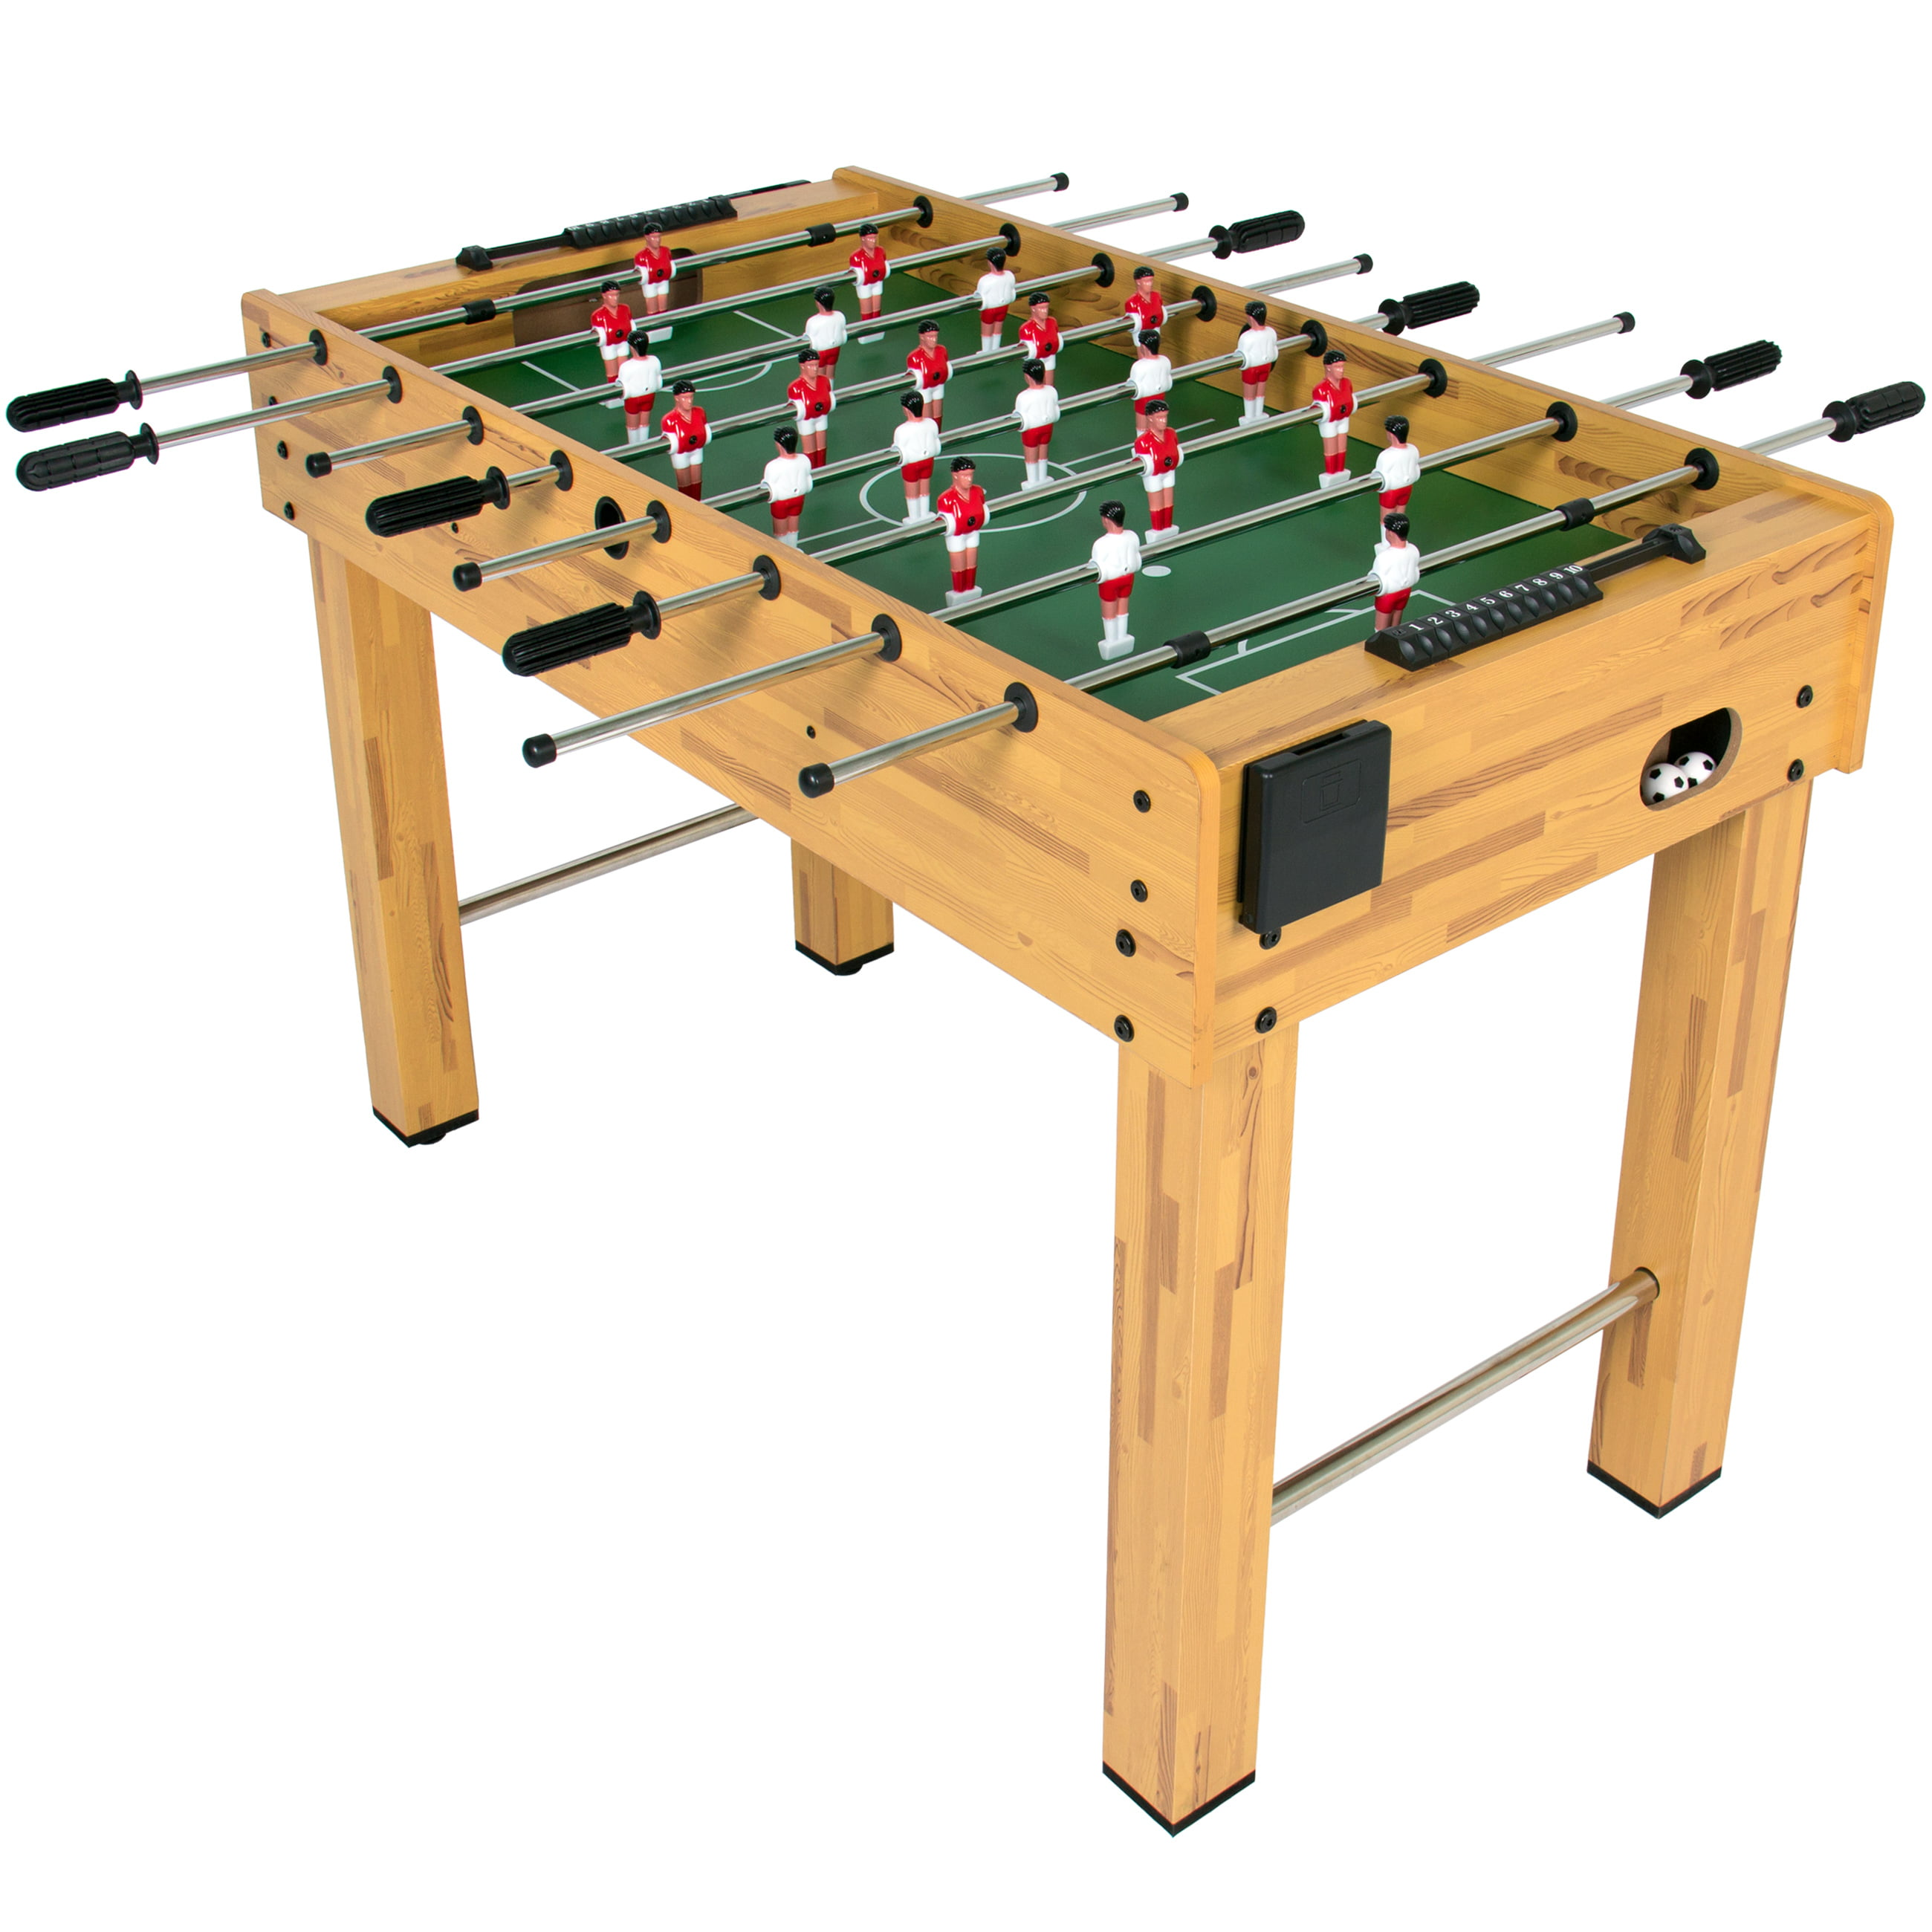 BCP Foosball Table Competition Sized Soccer Arcade Game Room - How much does a foosball table cost